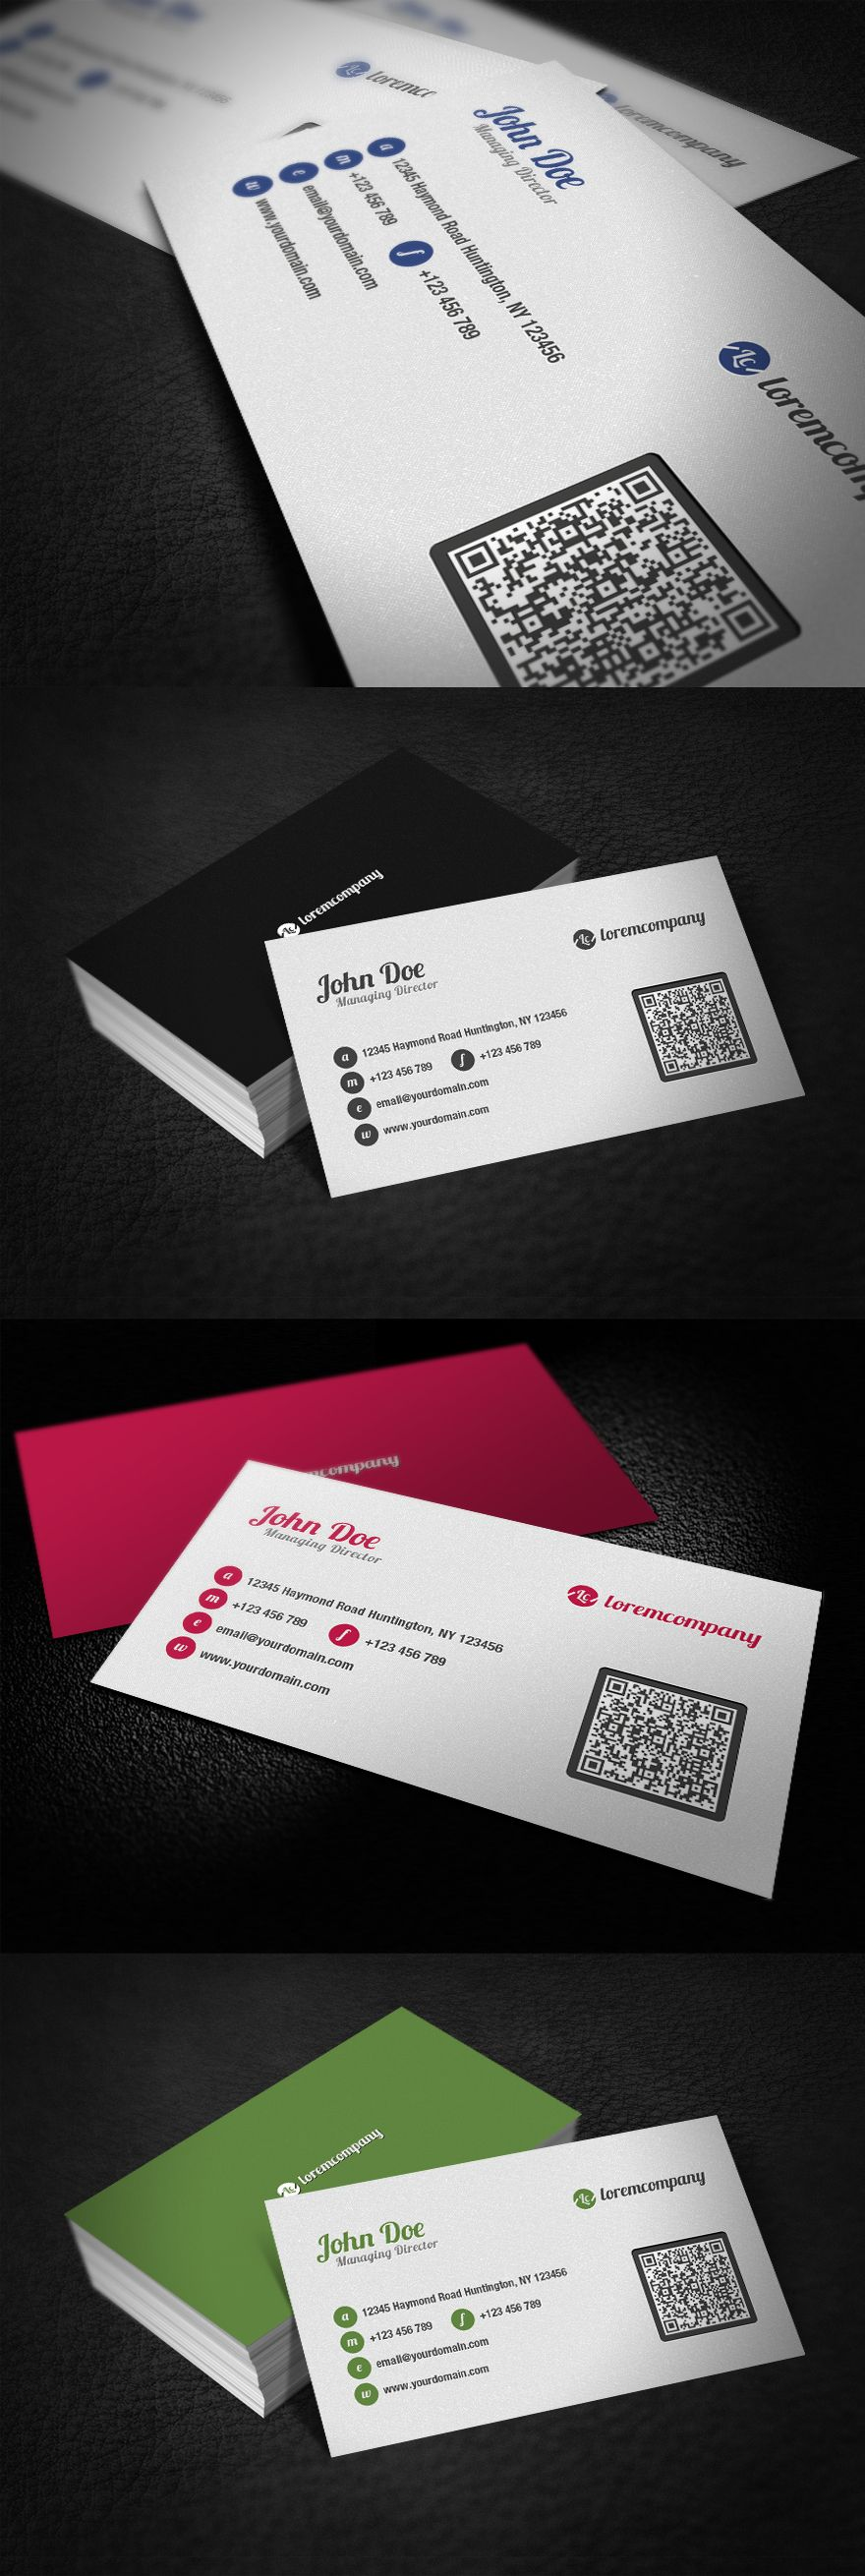 Clean qr code business card by glenngoh on deviantart httpwww clean qr code business card by glenngoh on deviantart httptechirsh reheart Choice Image